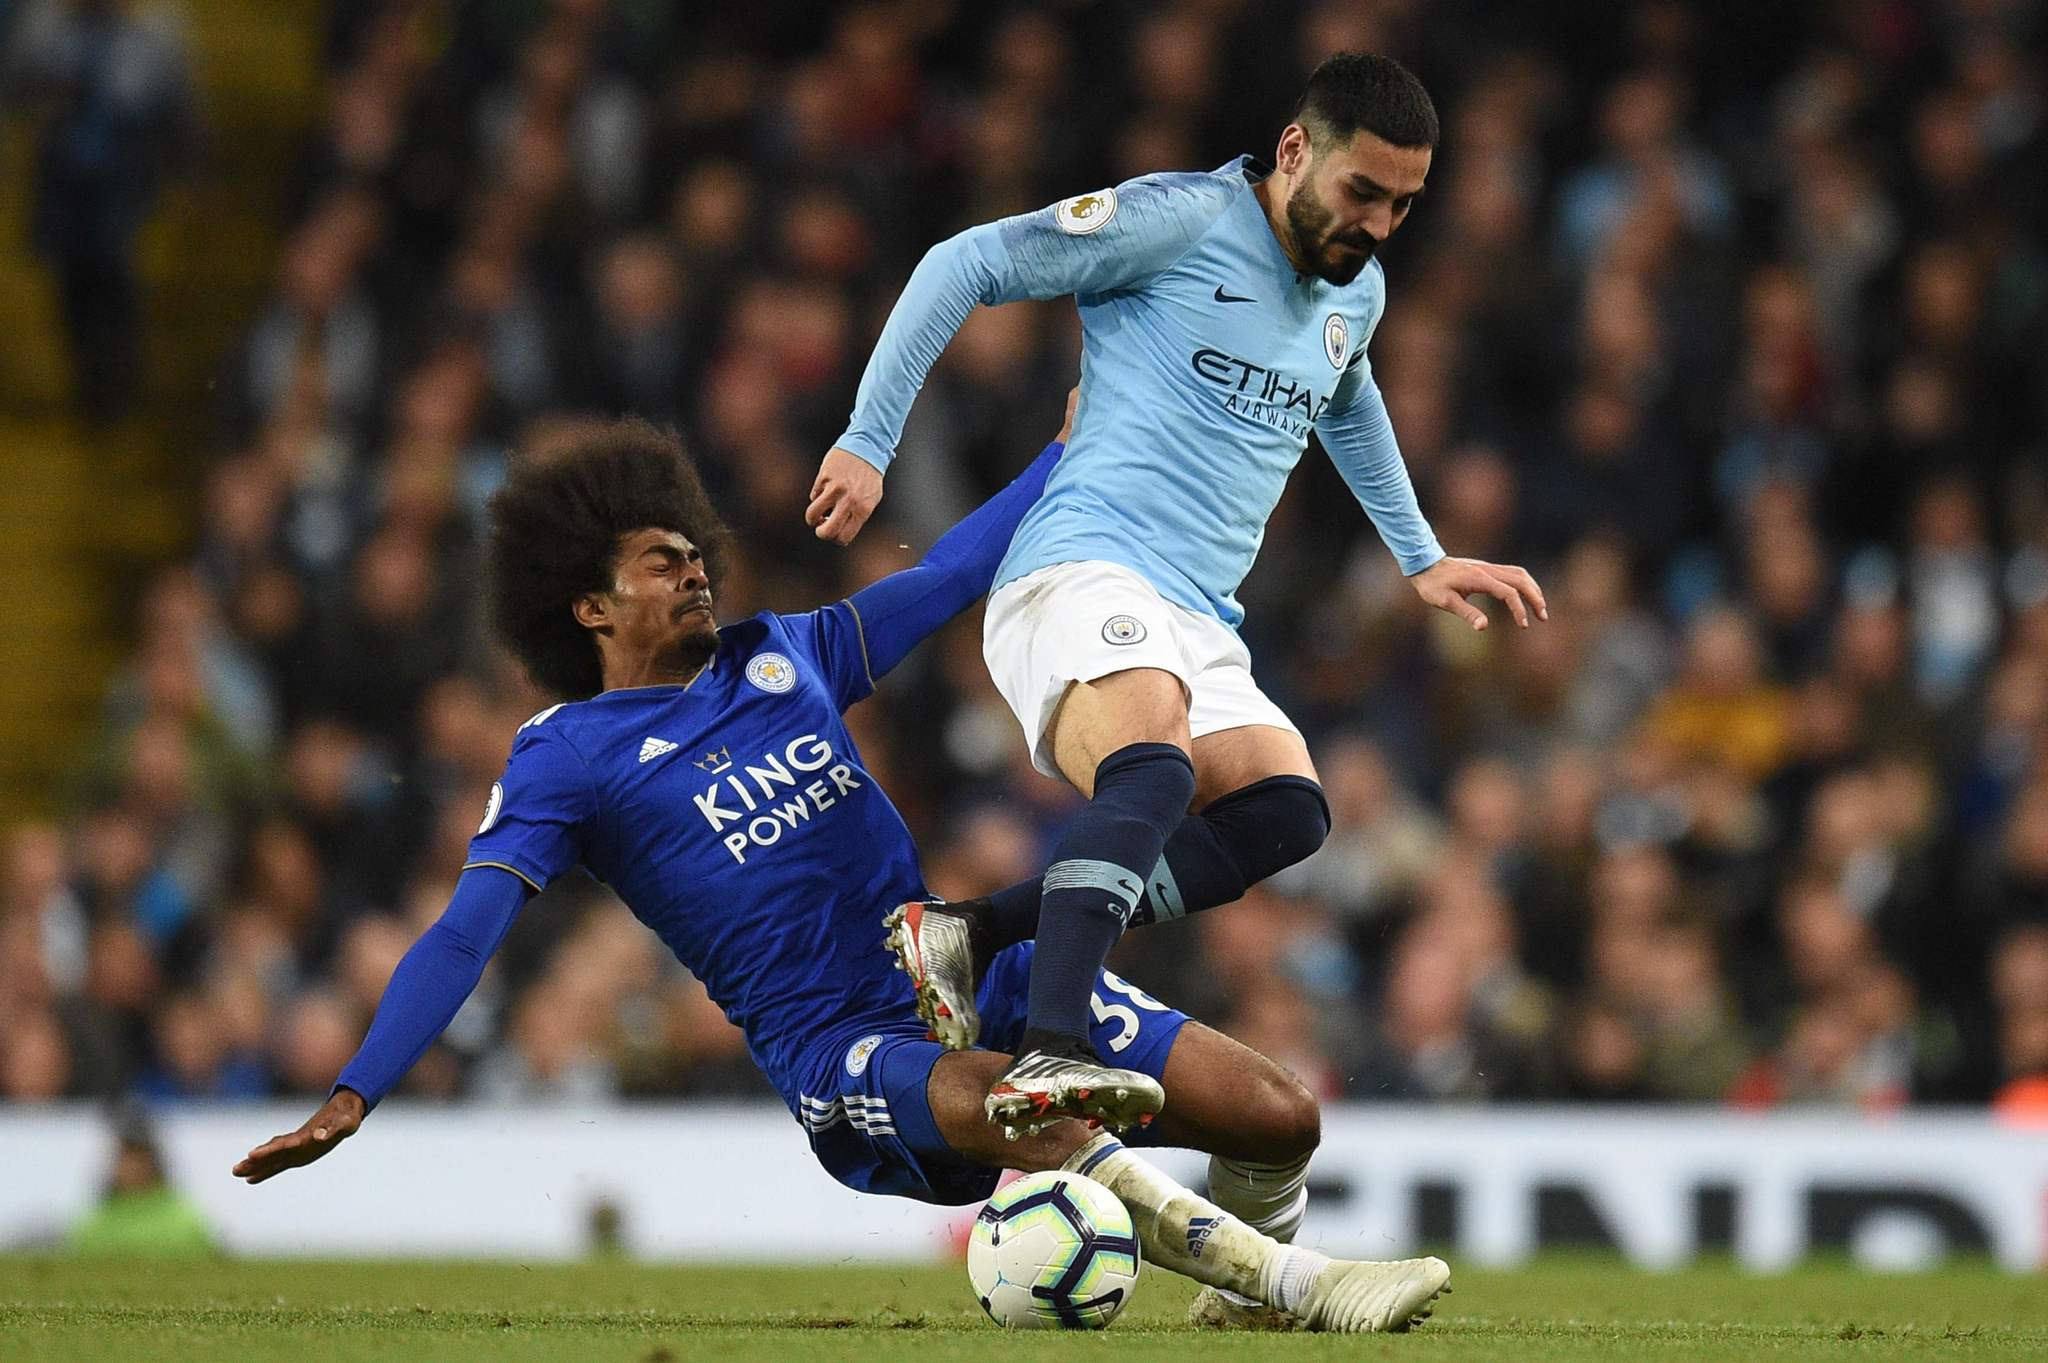 Leicester Citys English midfielder Hamza Choudhury (L) tackles Manchester Citys German midfielder Ilkay <HIT>Gundogan</HIT> (R) during the English Premier League football match between Manchester City and Leicester City at the Etihad Stadium in Manchester, north west England, on May 6, 2019. (Photo by Oli SCARFF / AFP) / RESTRICTED TO EDITORIAL USE. No use with unauthorized audio, video, data, fixture lists, club/league logos or live services. Online in-match use limited to 120 images. An additional 40 images may be used in extra time. No video emulation. Social media in-match use limited to 120 images. An additional 40 images may be used in extra time. No use in betting publications, games or single club/league/player publications. /